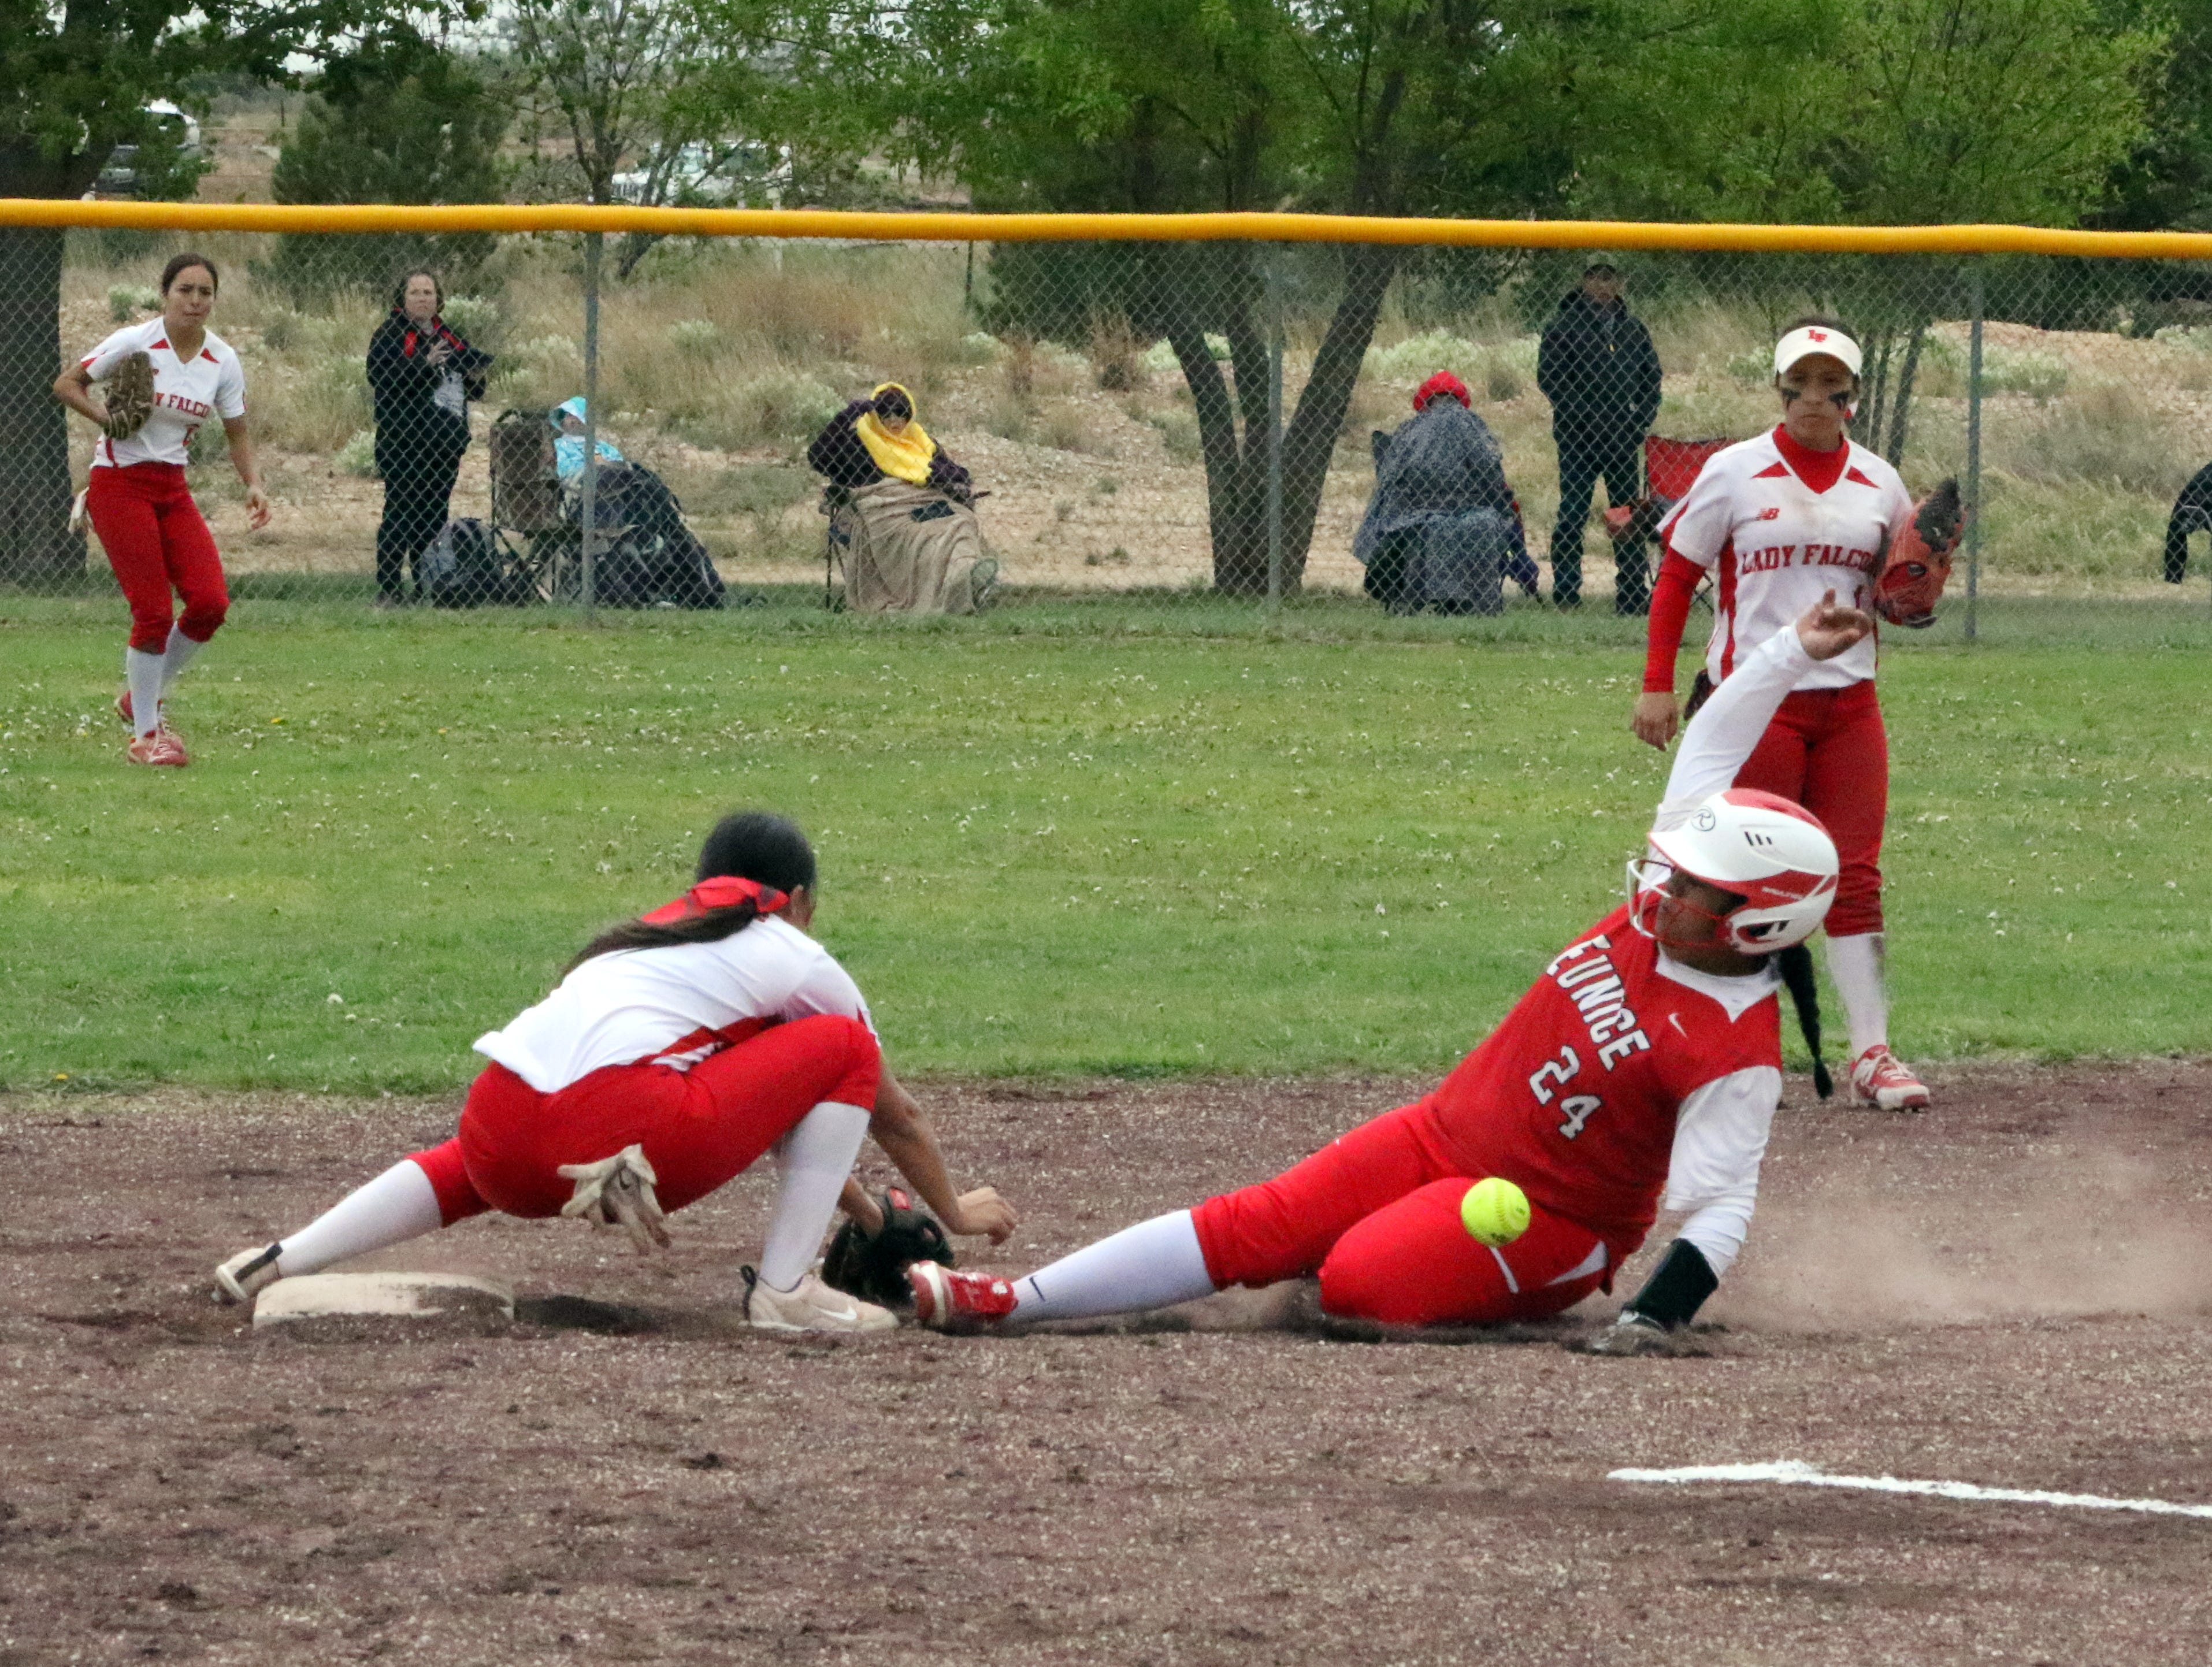 Eunice's Cheyanne Nichols safely slides into second base during Game 1 of Saturday's doubleheader. Eunice won Game 1, 13-12 and Loving won Game 2, 16-6.